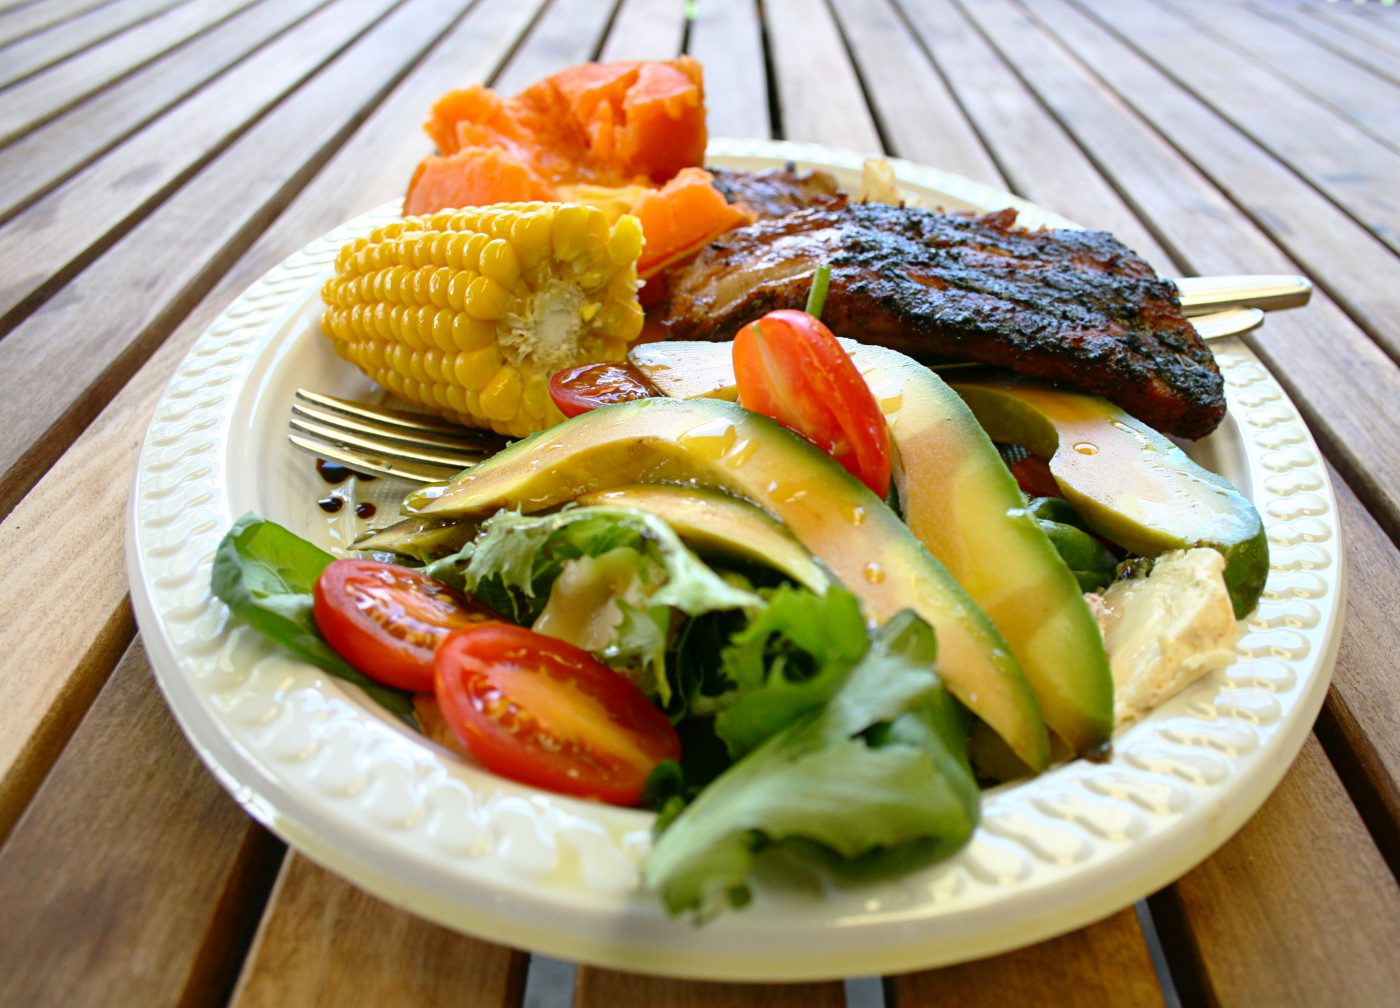 bbq-lunch-1318462, freeimage, by Vaughan Willis